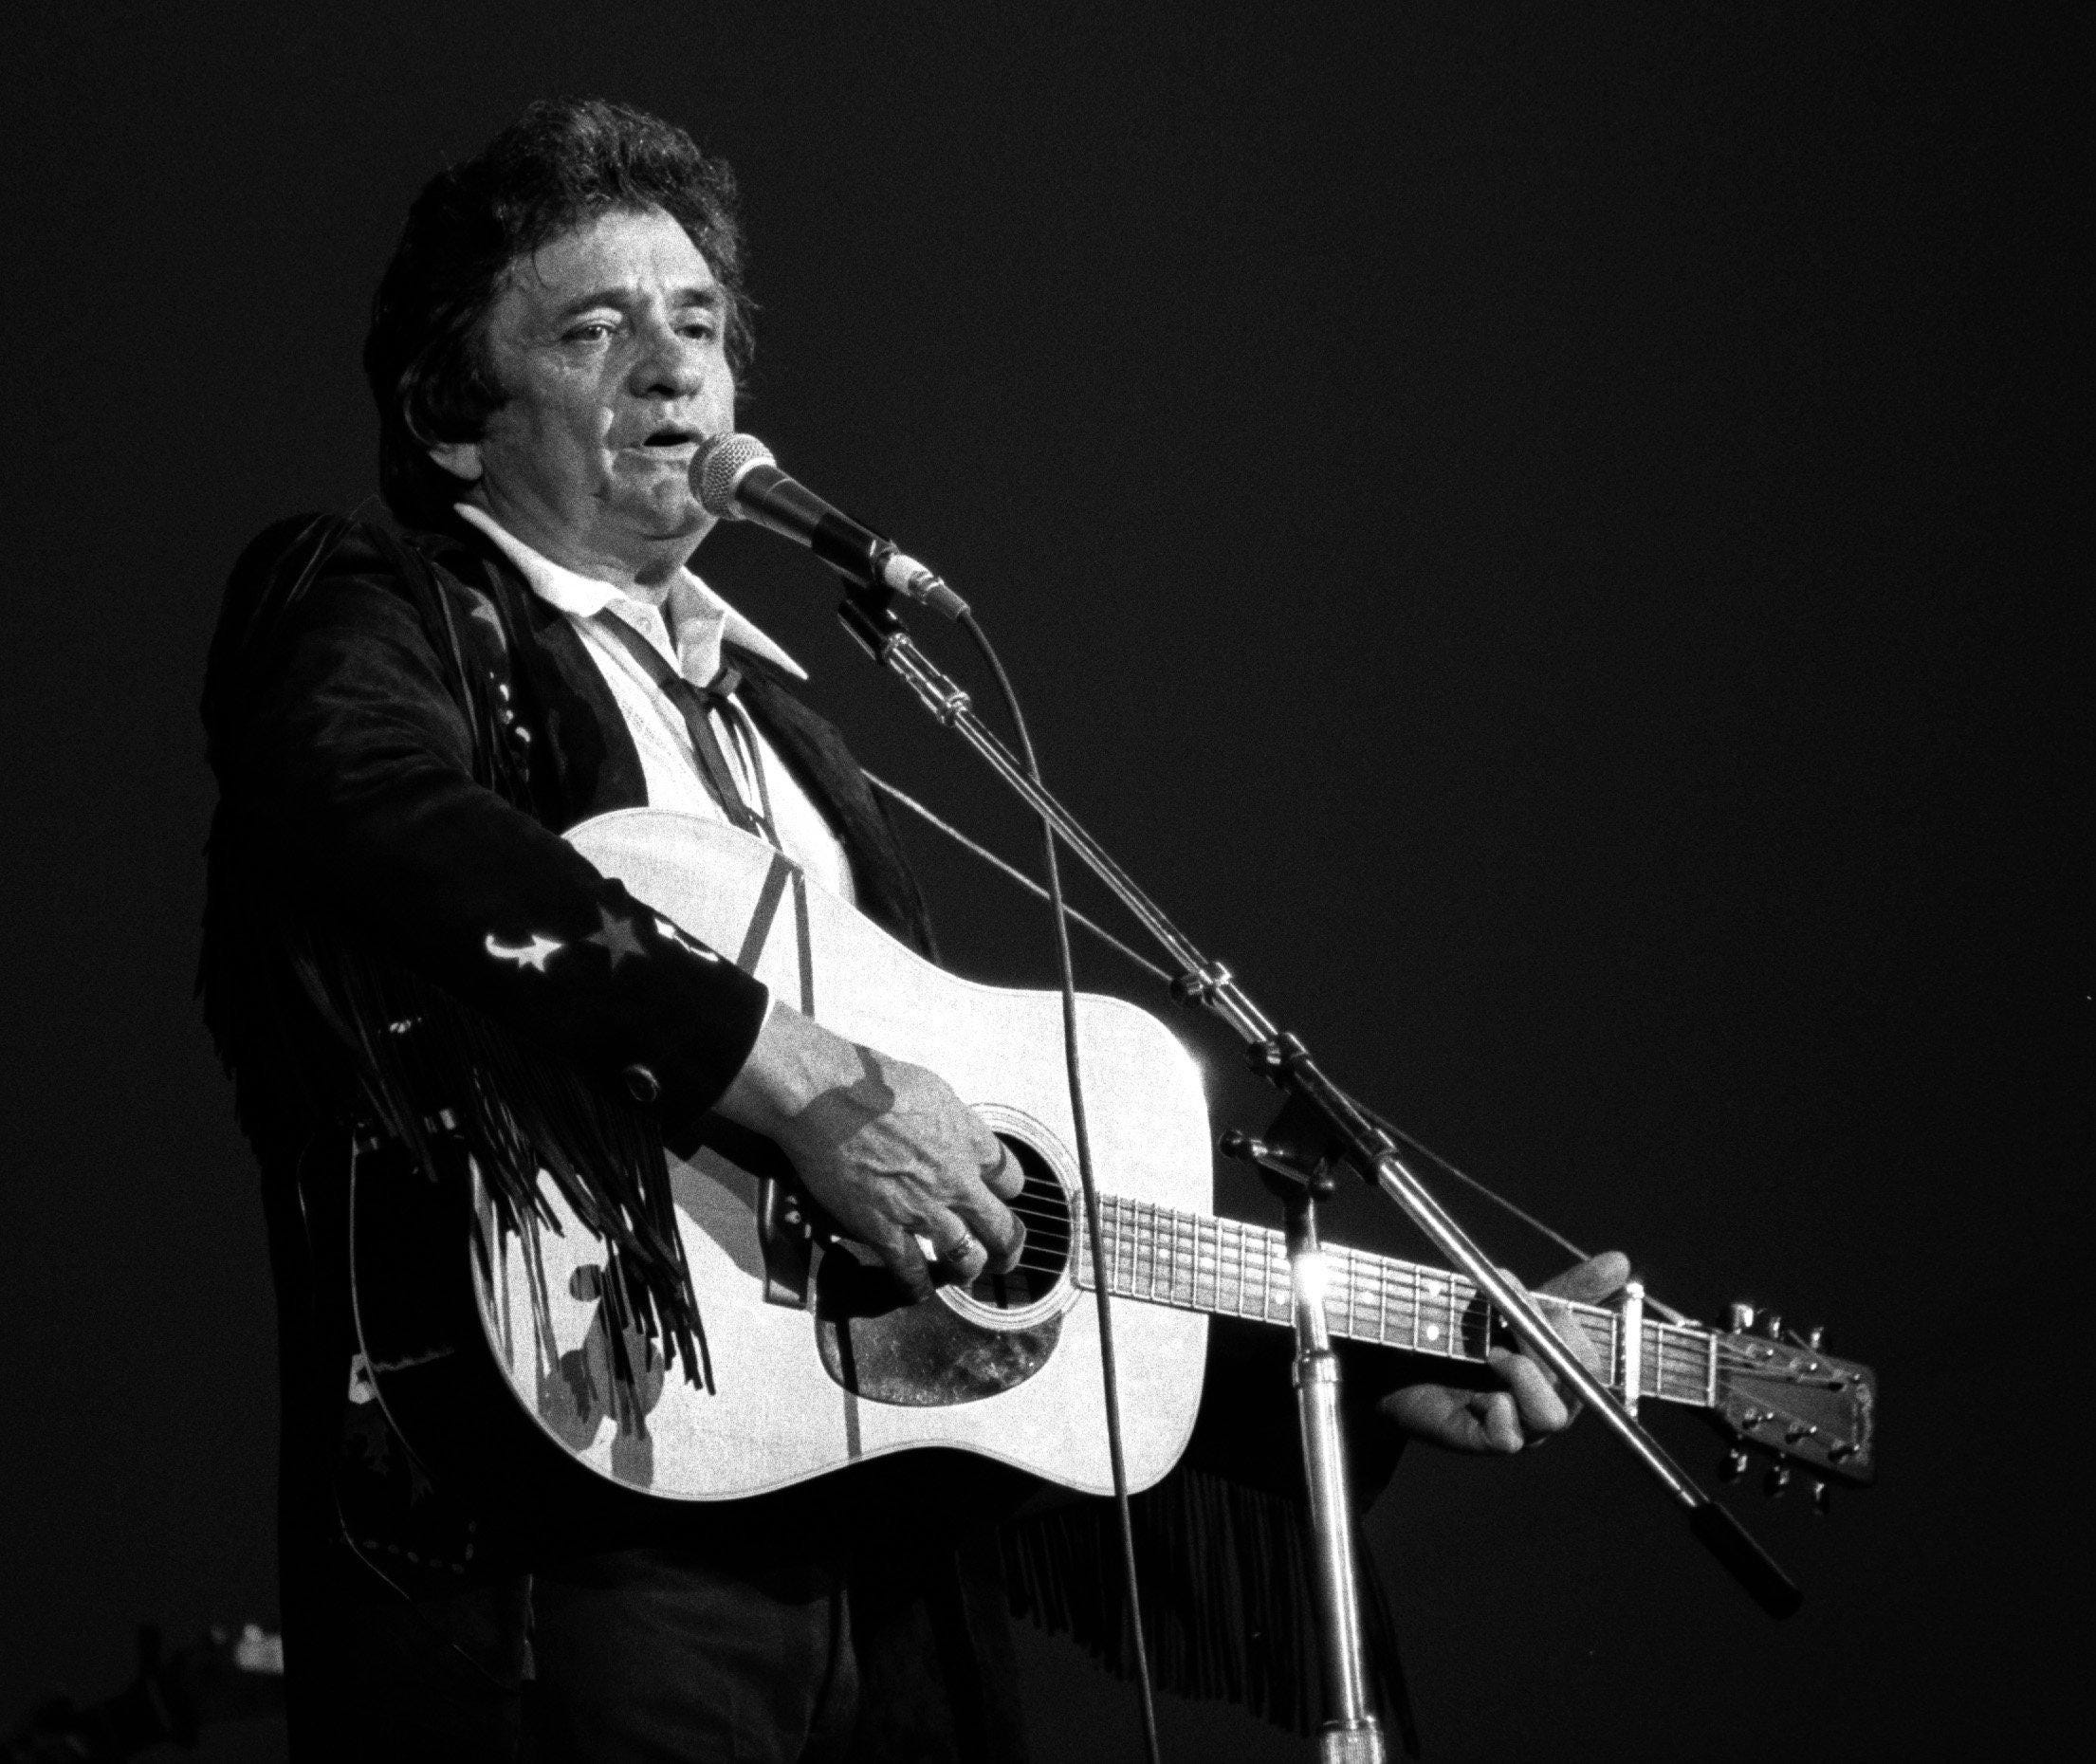 Ken Burns' 'Country Music': Inmate Merle Haggard saw Johnny Cash perform at San Quentin